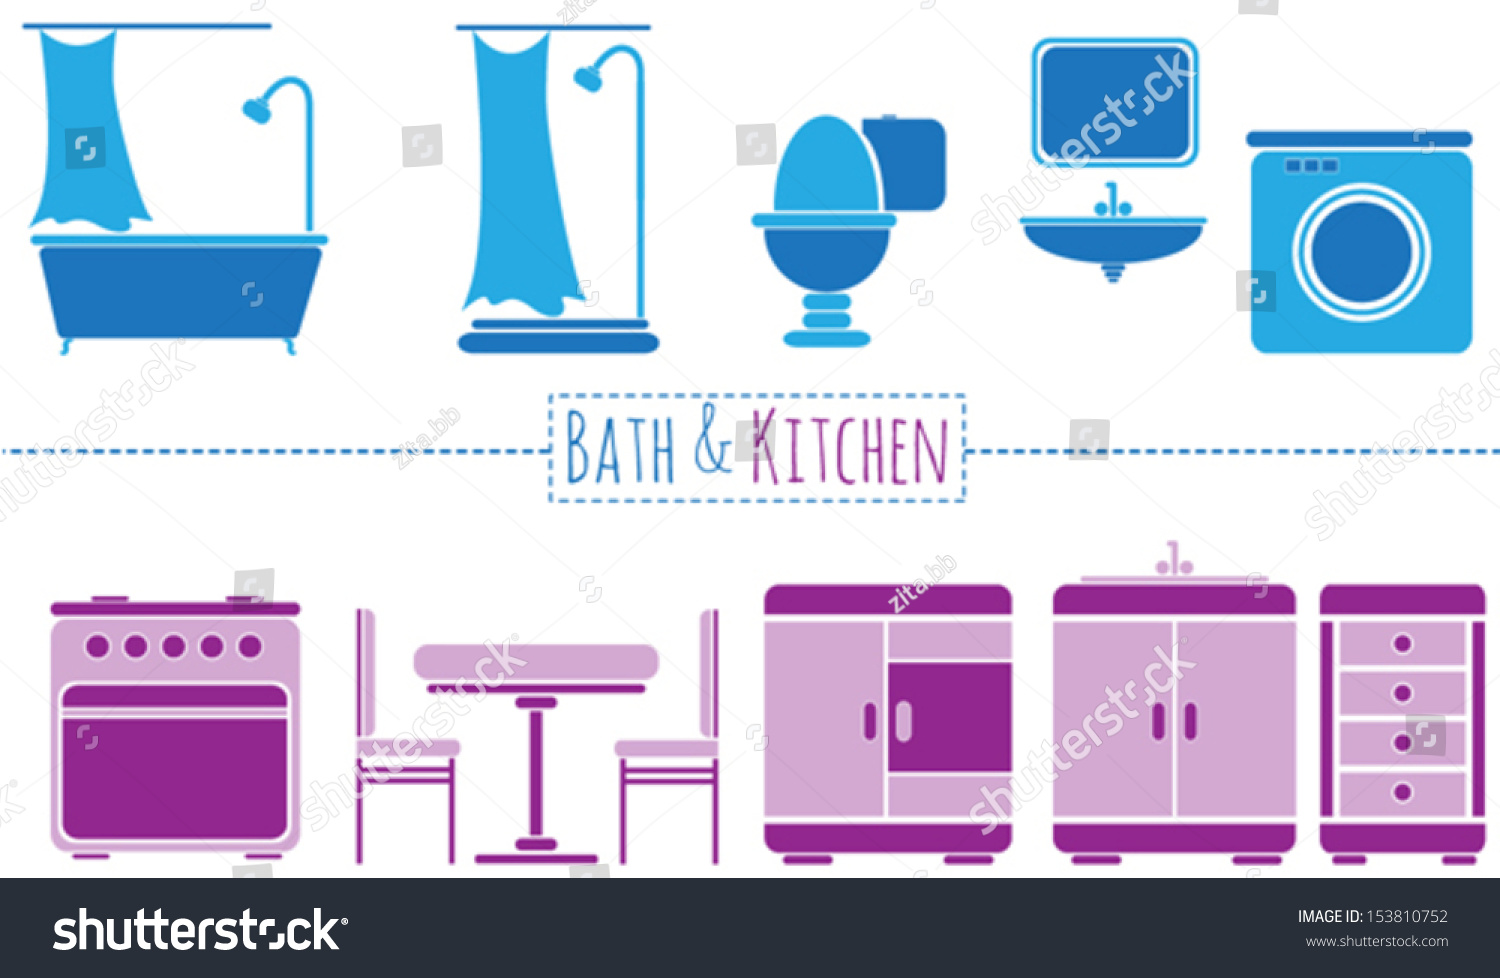 Toilet signs vector set stock images image 36323784 - Minimal Vector Bathroom Kitchen Set Stock Vector 153810752 Stock Vector Minimal Vector Bathroom And Kitchen Set